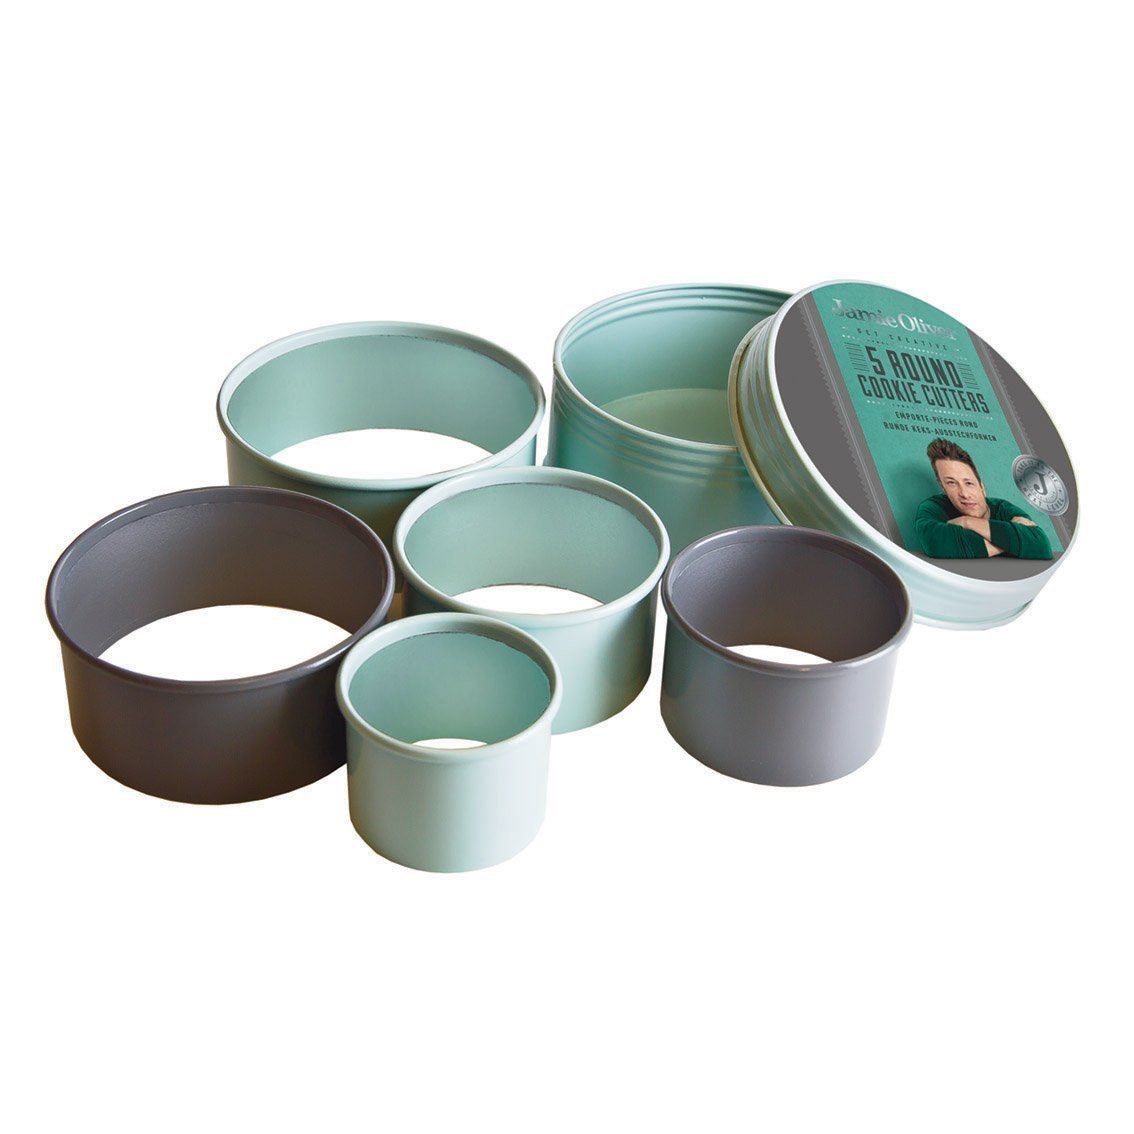 Jamie Oliver Cookie Cutting Set - Nesting Stainless Steel Round Shape Cutters - Includes Storage Container Tin, 5-Piece